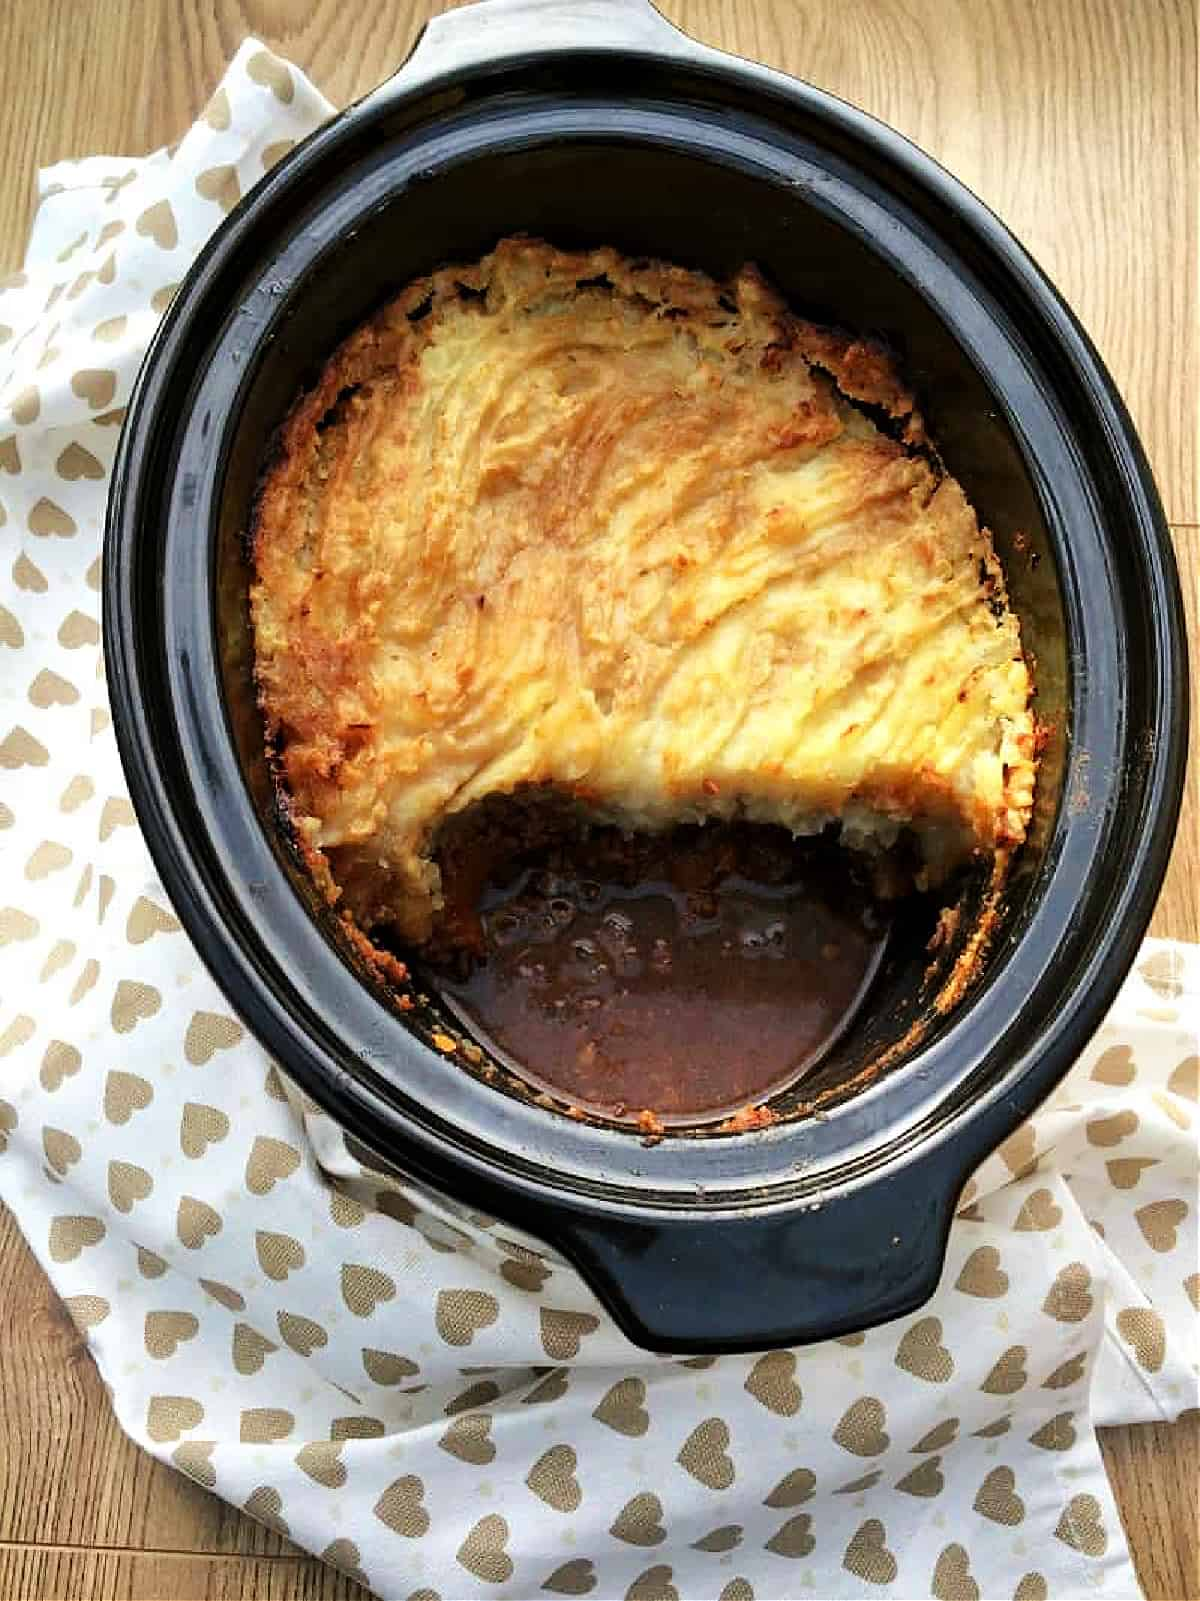 Overhead view of cottage pie with mashed potato topping in slow cooker pot.